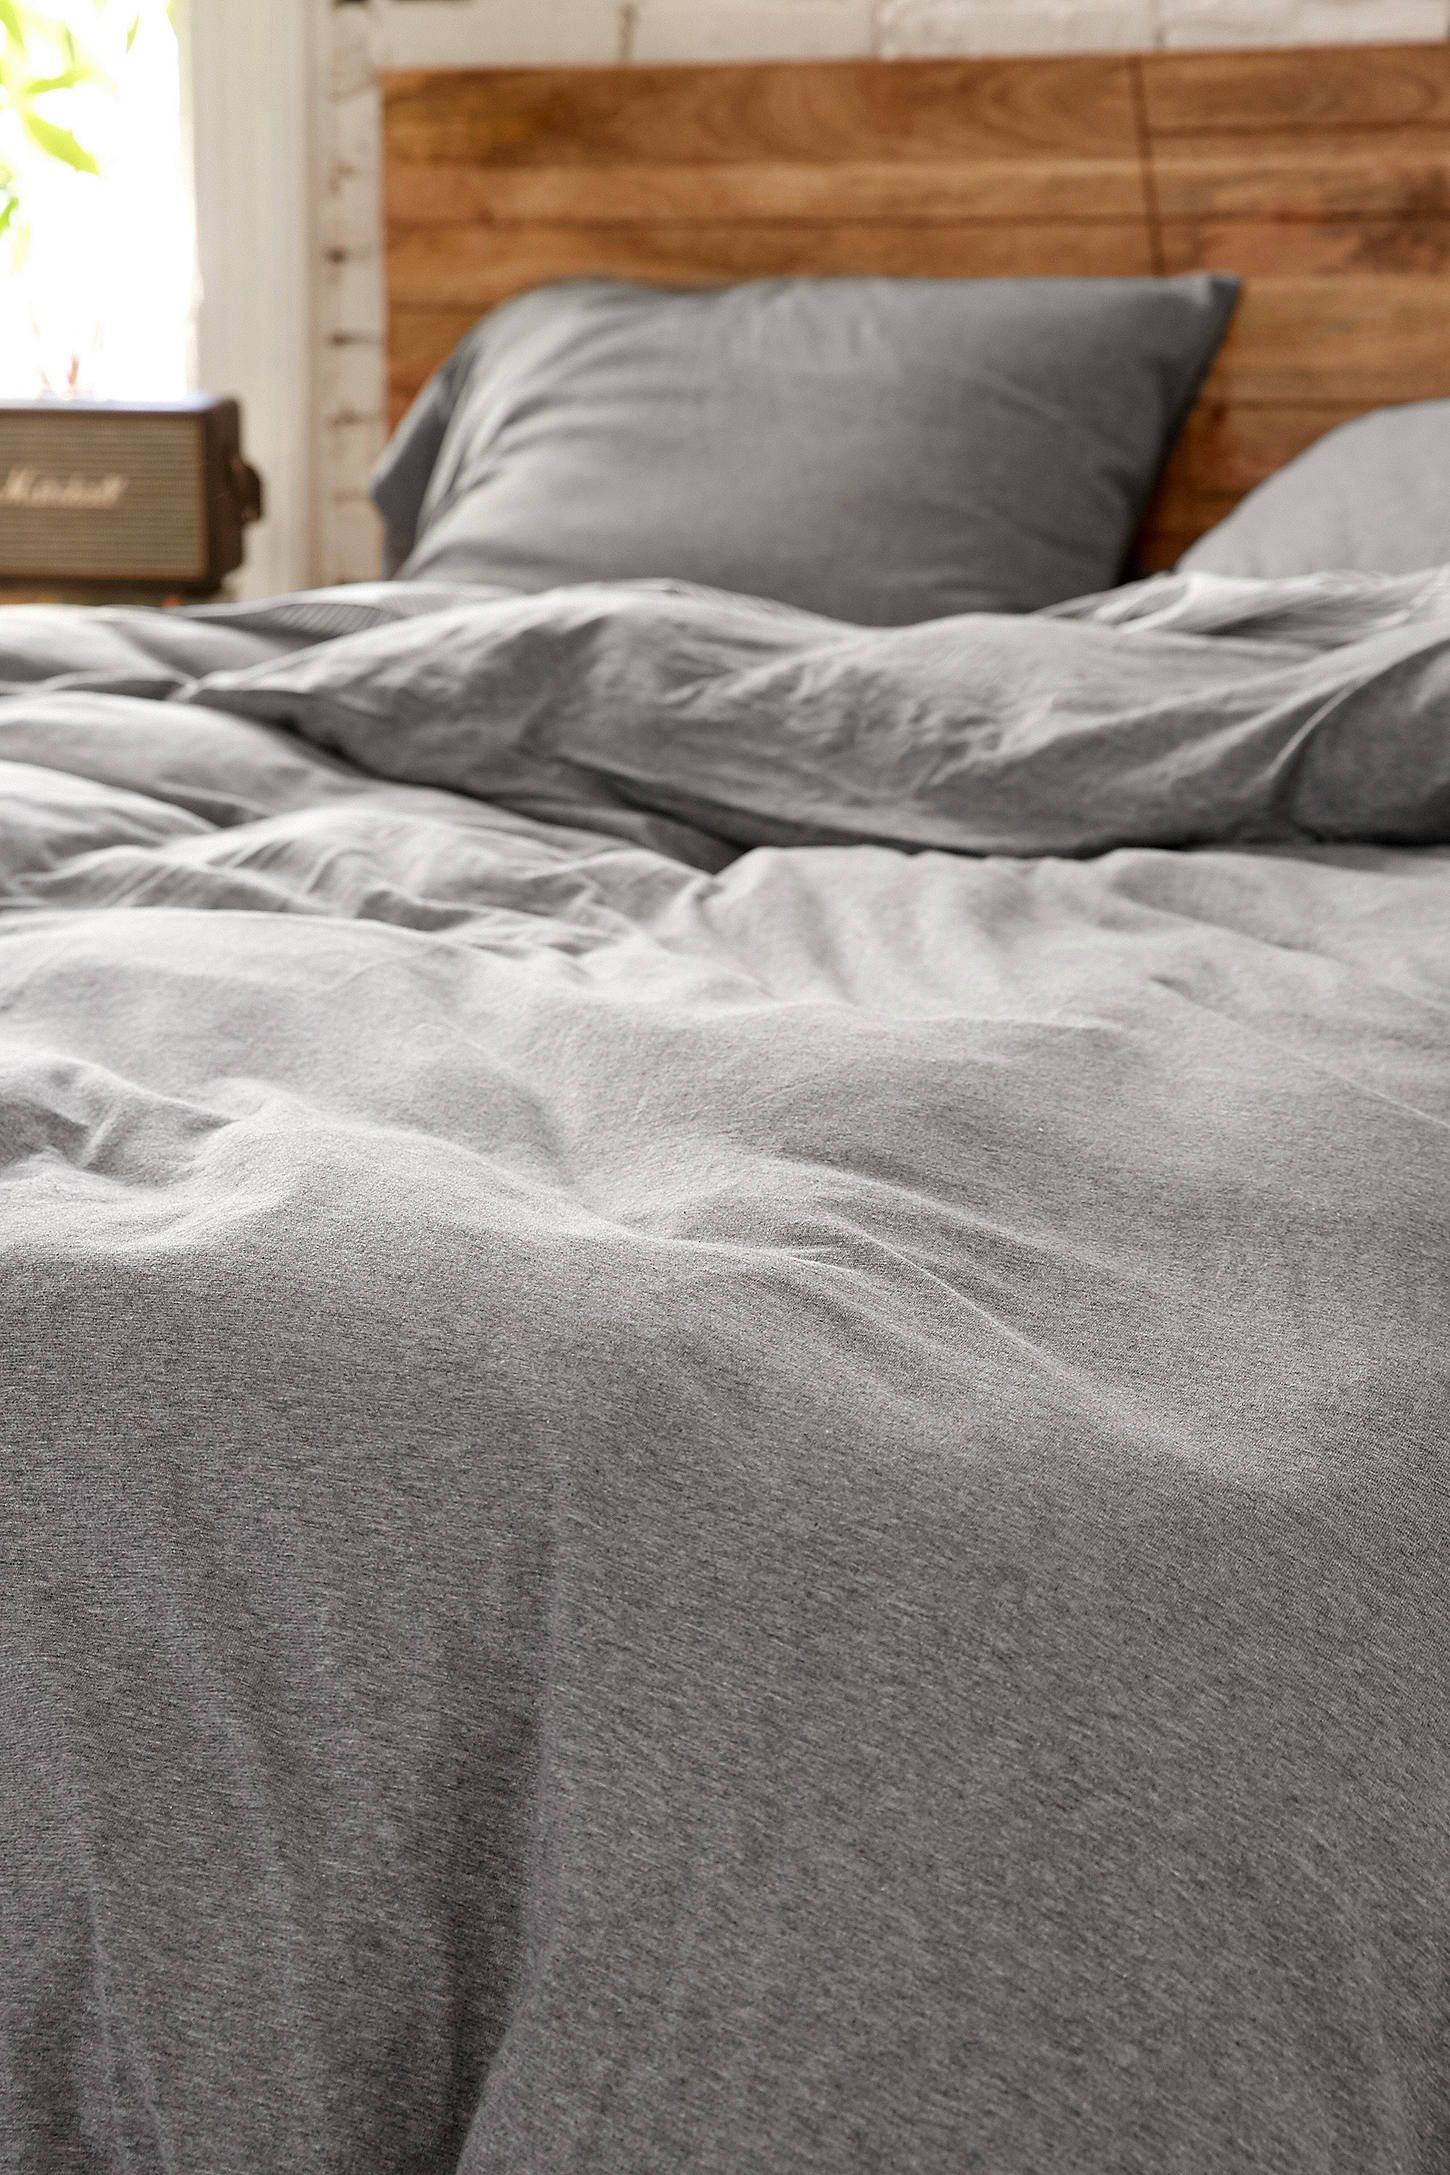 Slide View: 4: Heather Grey Jersey Duvet Set